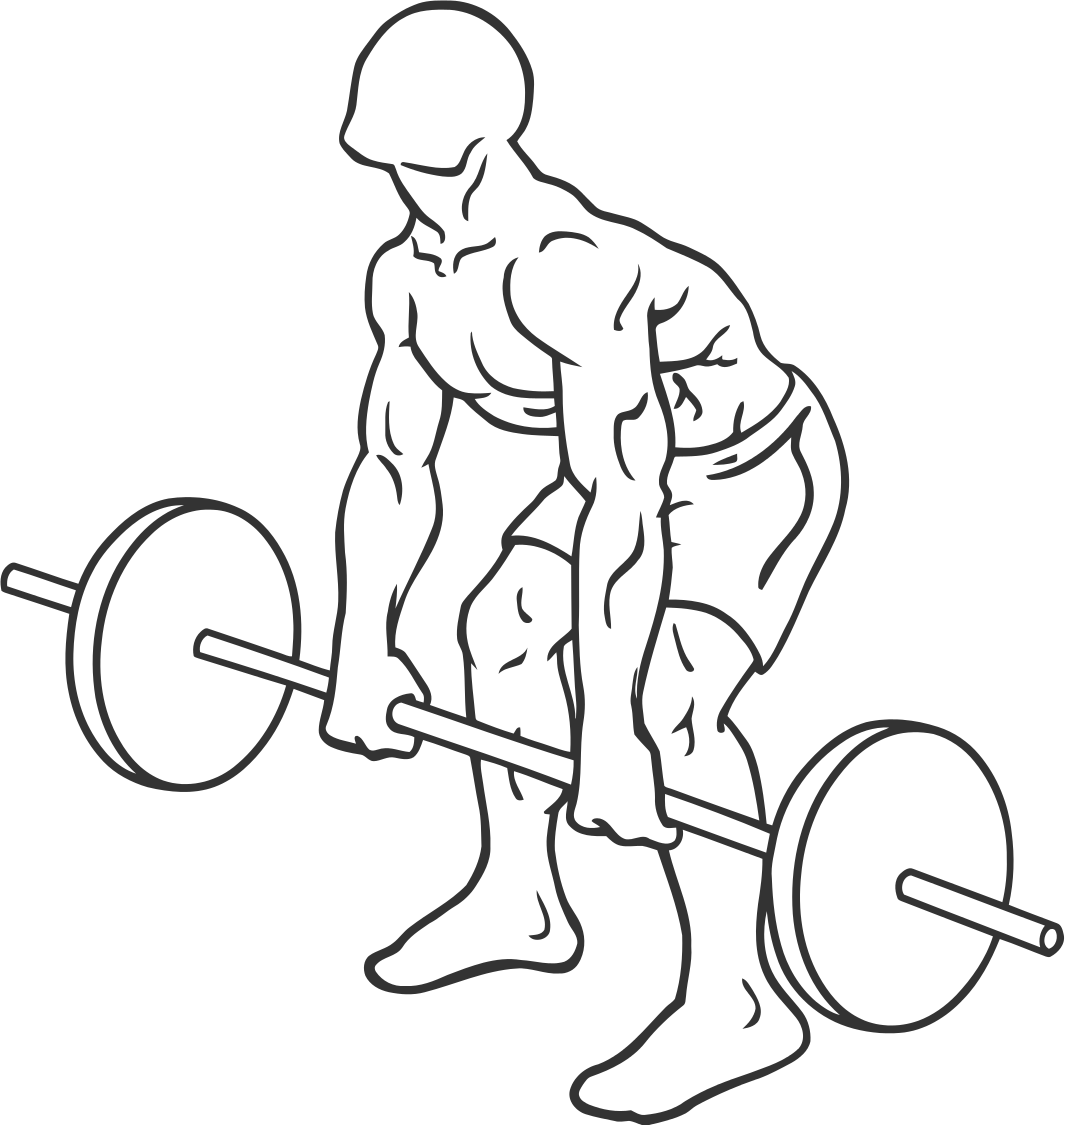 1081x1125 Top 6 Exercises For A Muscular Physique